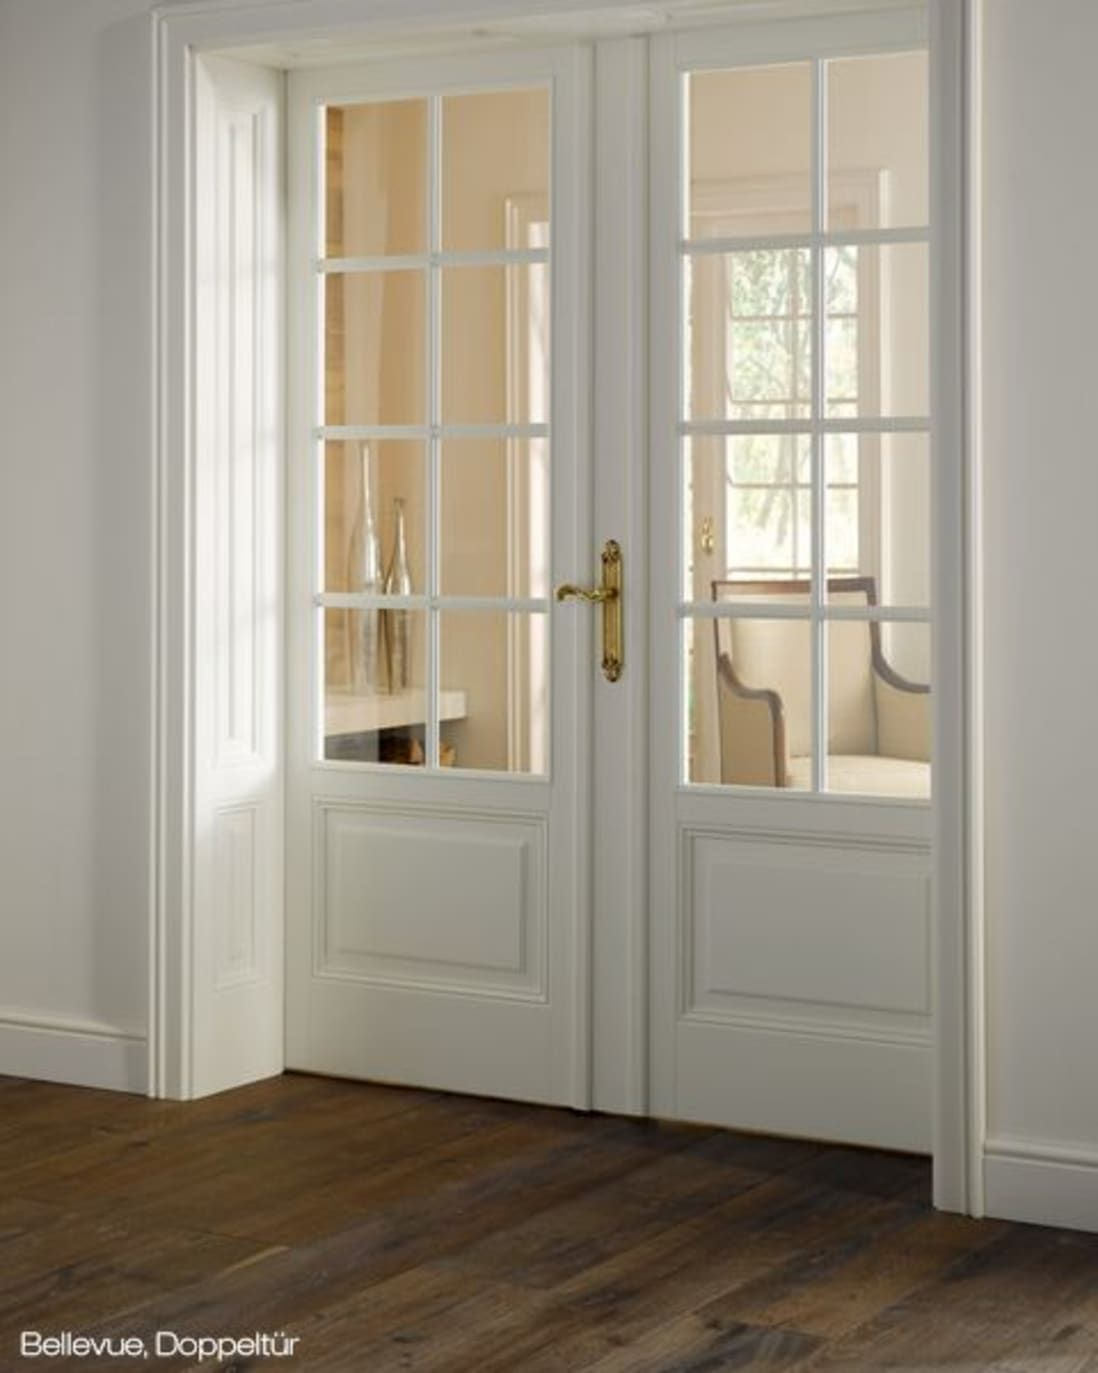 Adding Architectural Interest A Gallery Of Interior French Door Styles Ideas French Doors Interior Double Doors Interior Doors Interior